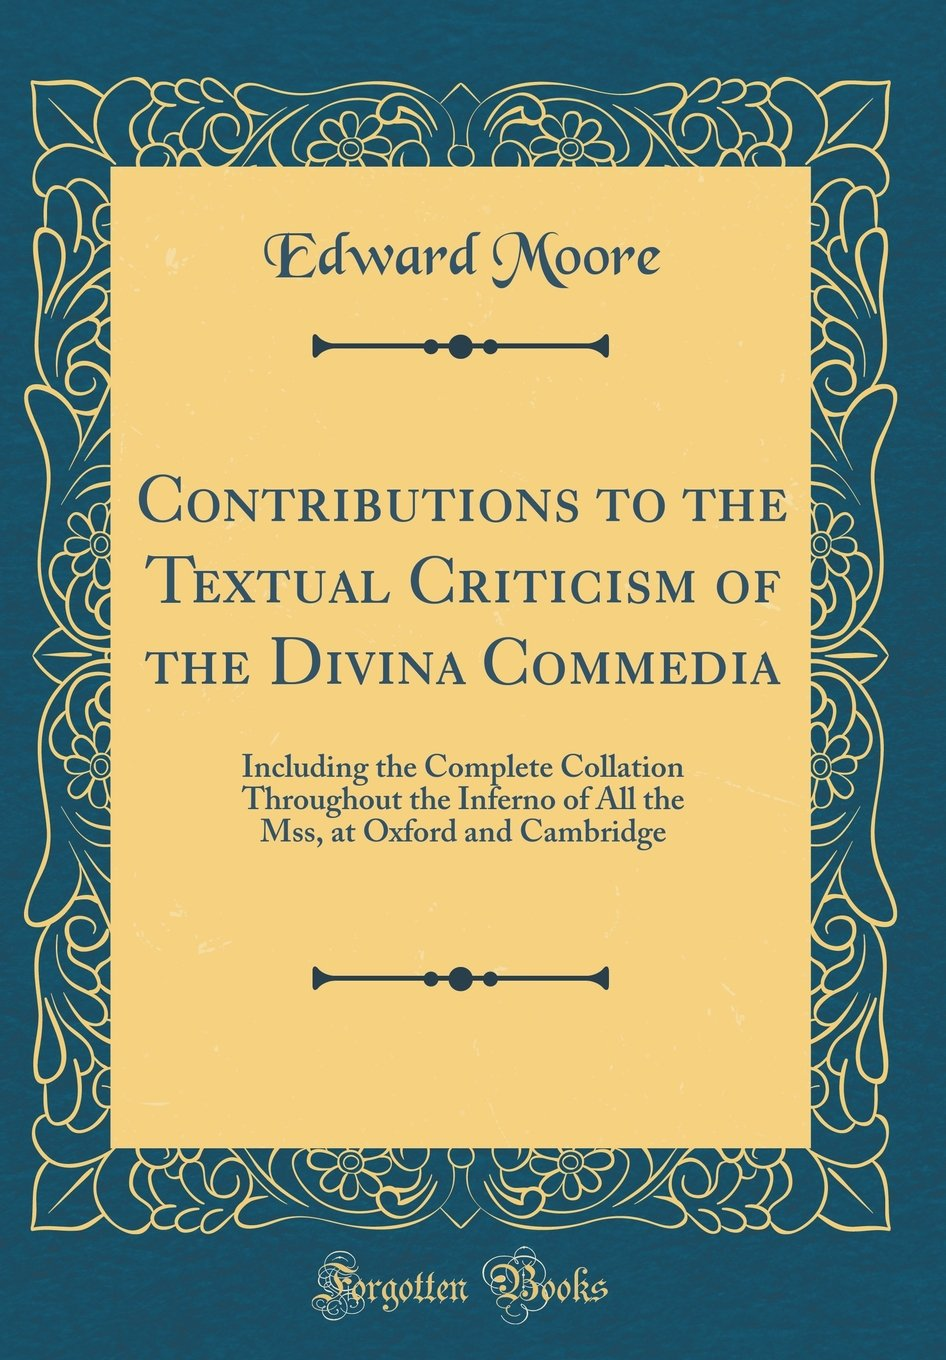 Download Contributions to the Textual Criticism of the Divina Commedia: Including the Complete Collation Throughout the Inferno of All the Mss, at Oxford and Cambridge (Classic Reprint) pdf